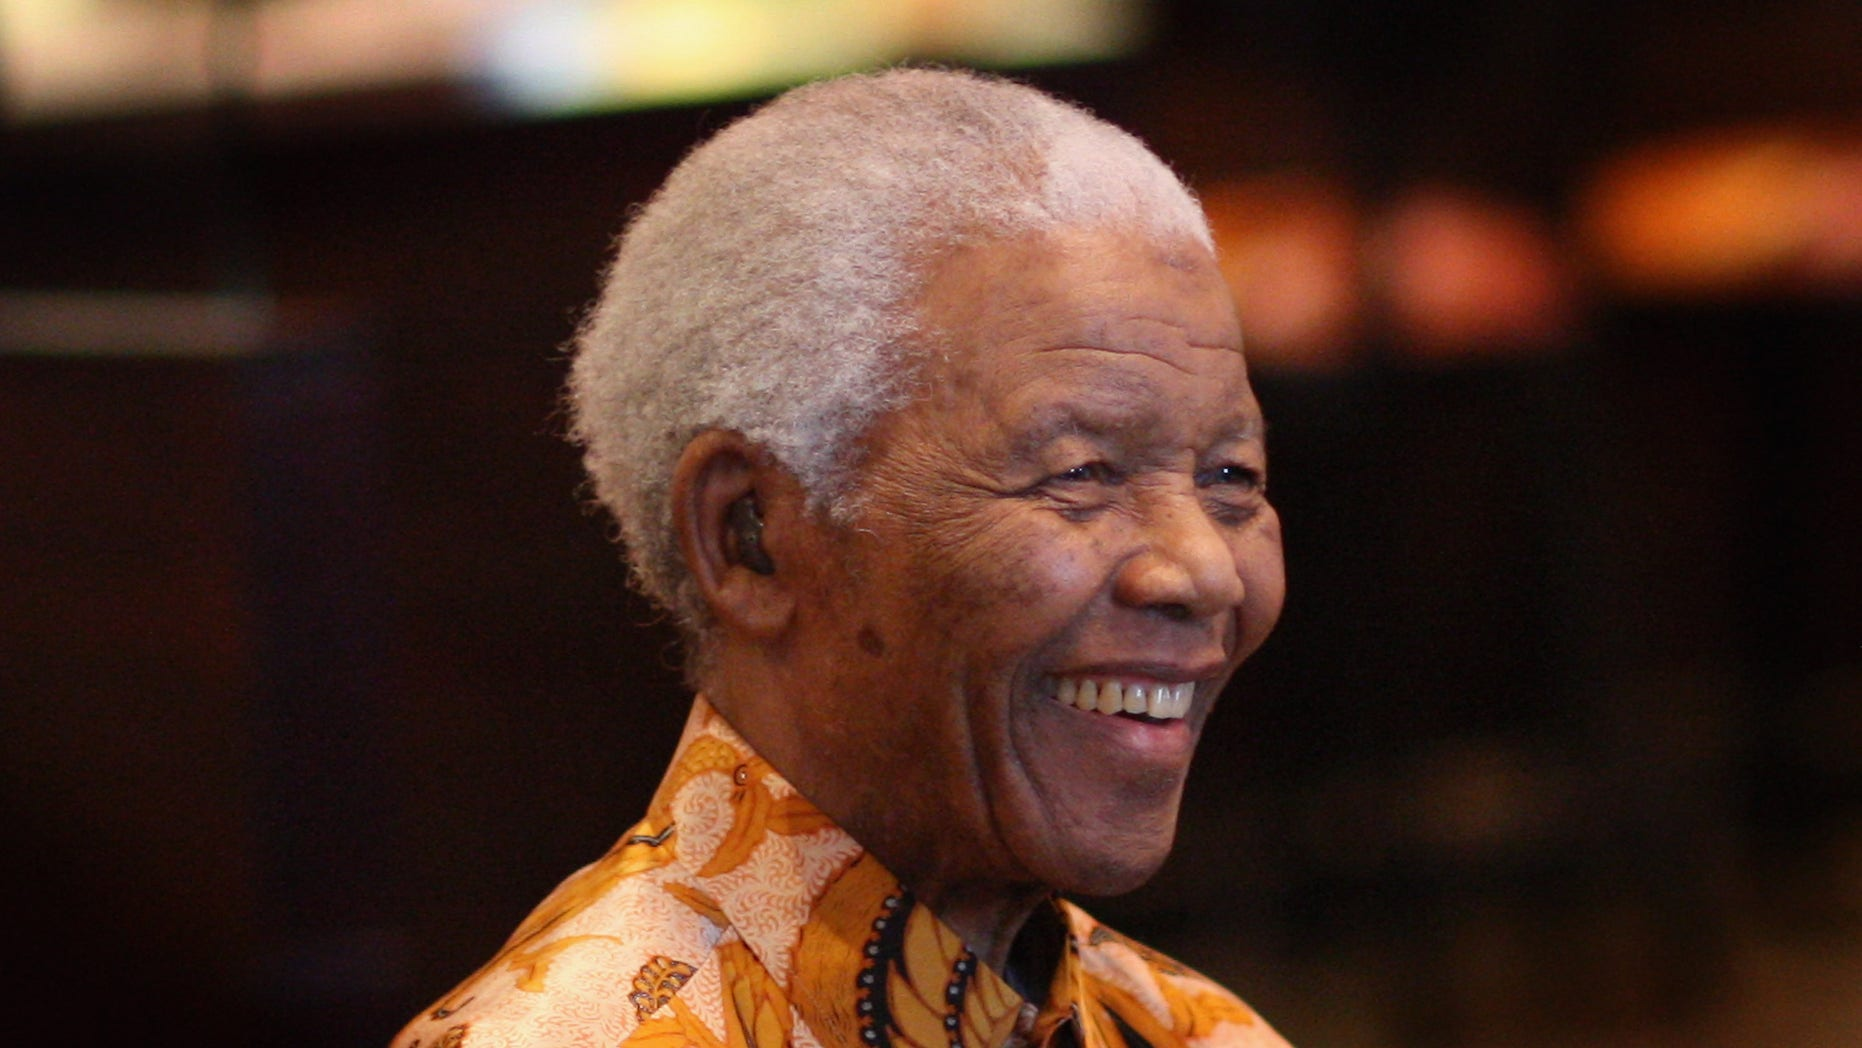 Rooms: Nelson Mandela: Leading With Dignity